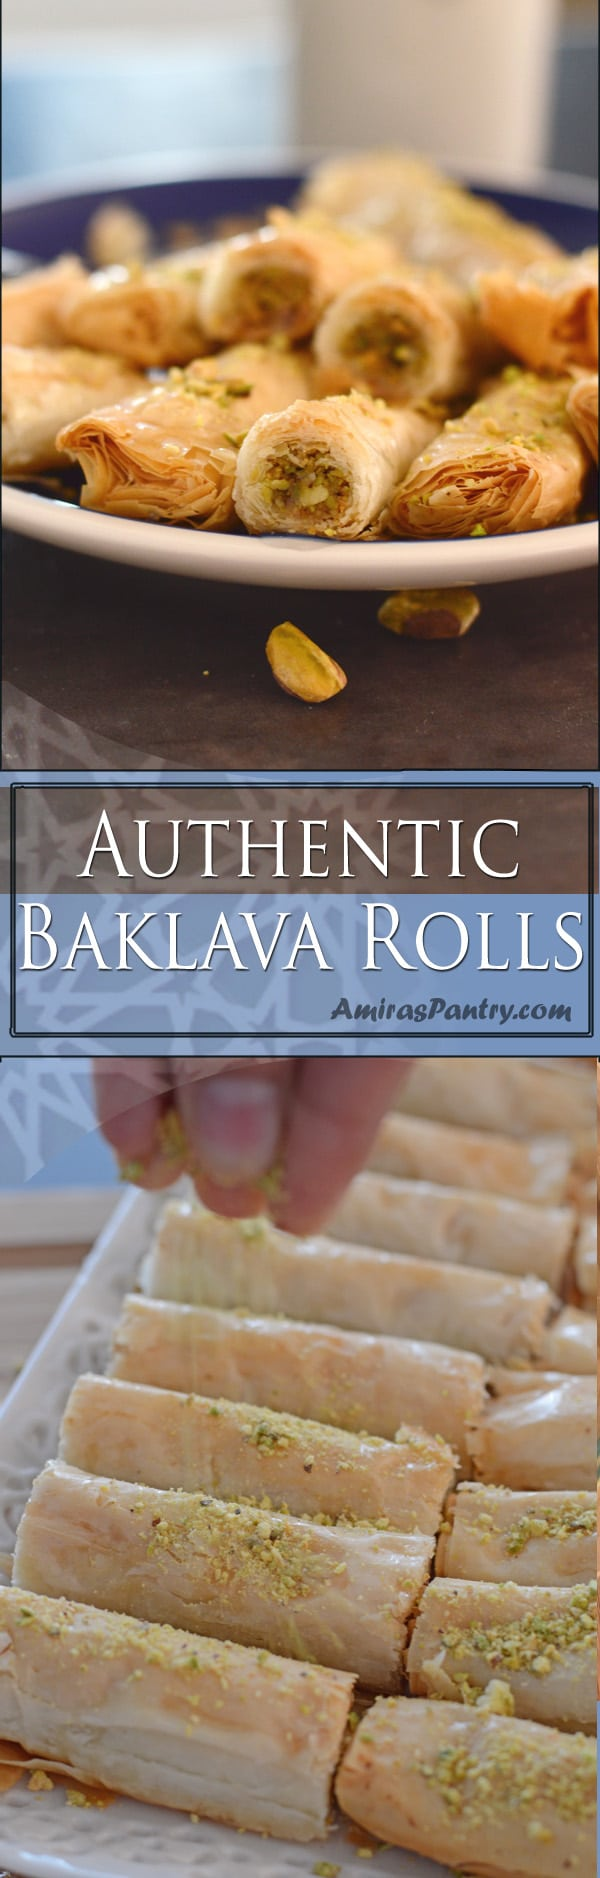 Perfect dessert for your next party, a quick and easy fix for your baklava crave. Crunchy, buttery layers of phyllo dough stuffed with spiced nuts and drizzled with simple syrup. A fun party spin on a Mediterranean favorite recipe.